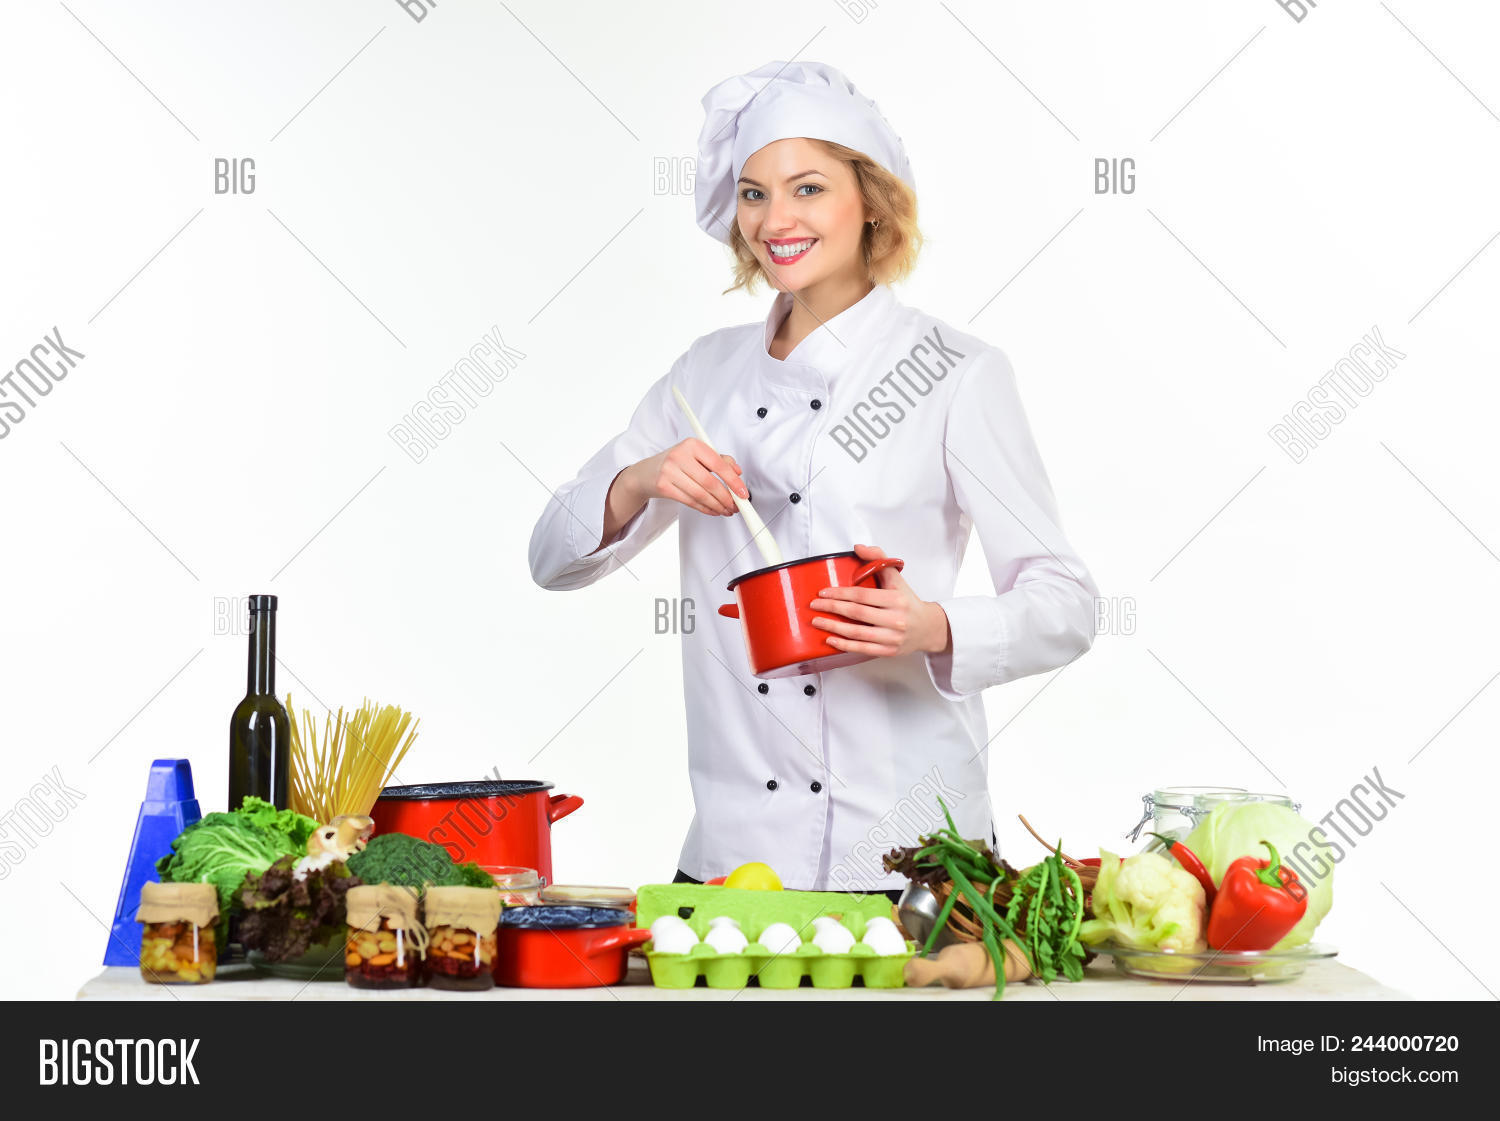 preparing dishes image photo free trial bigstock